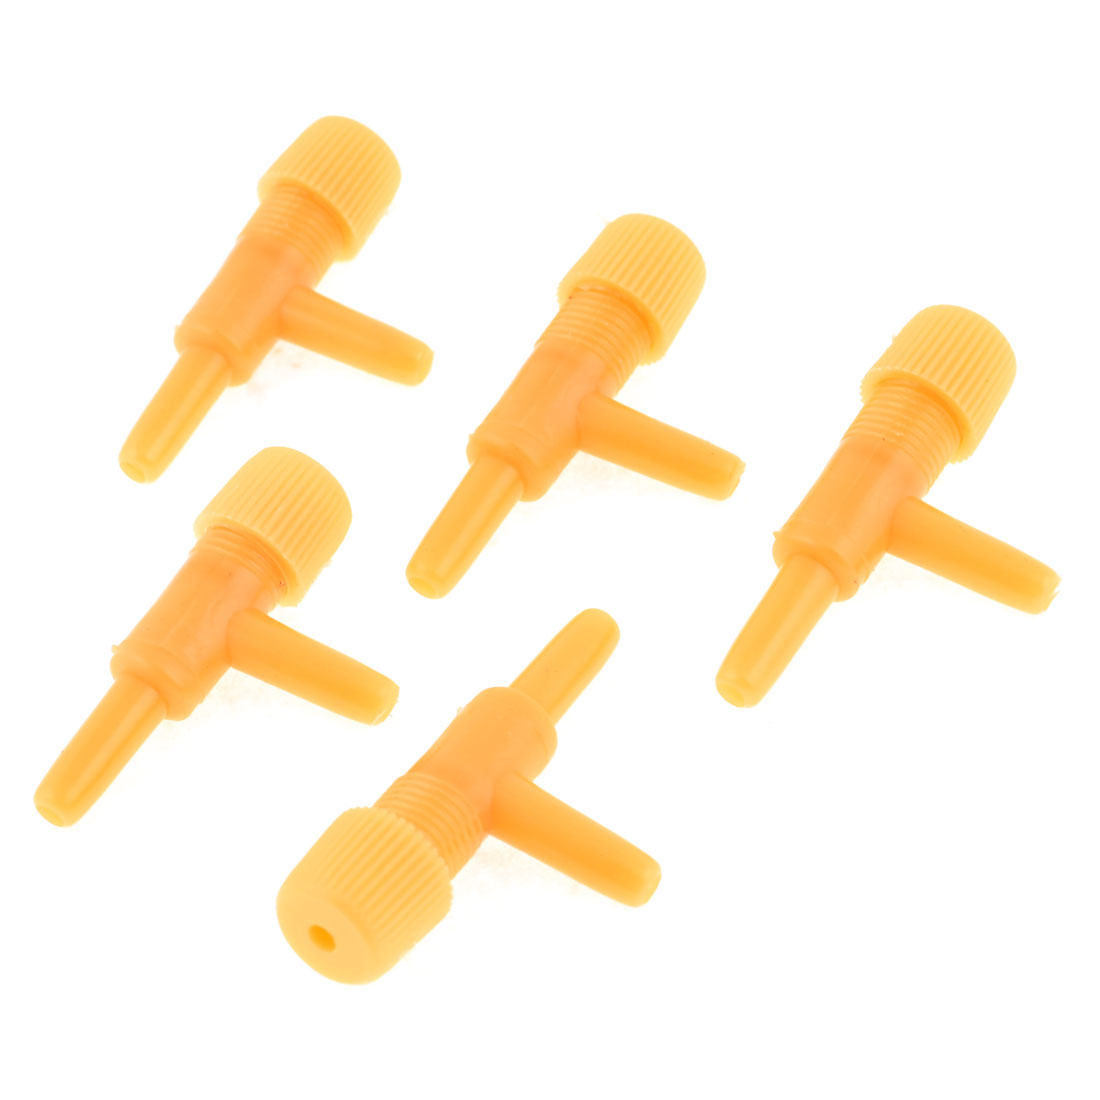 Aquarium Yellow Plastic Round Outlet Air Control Valves Tube Adapter 5pcs